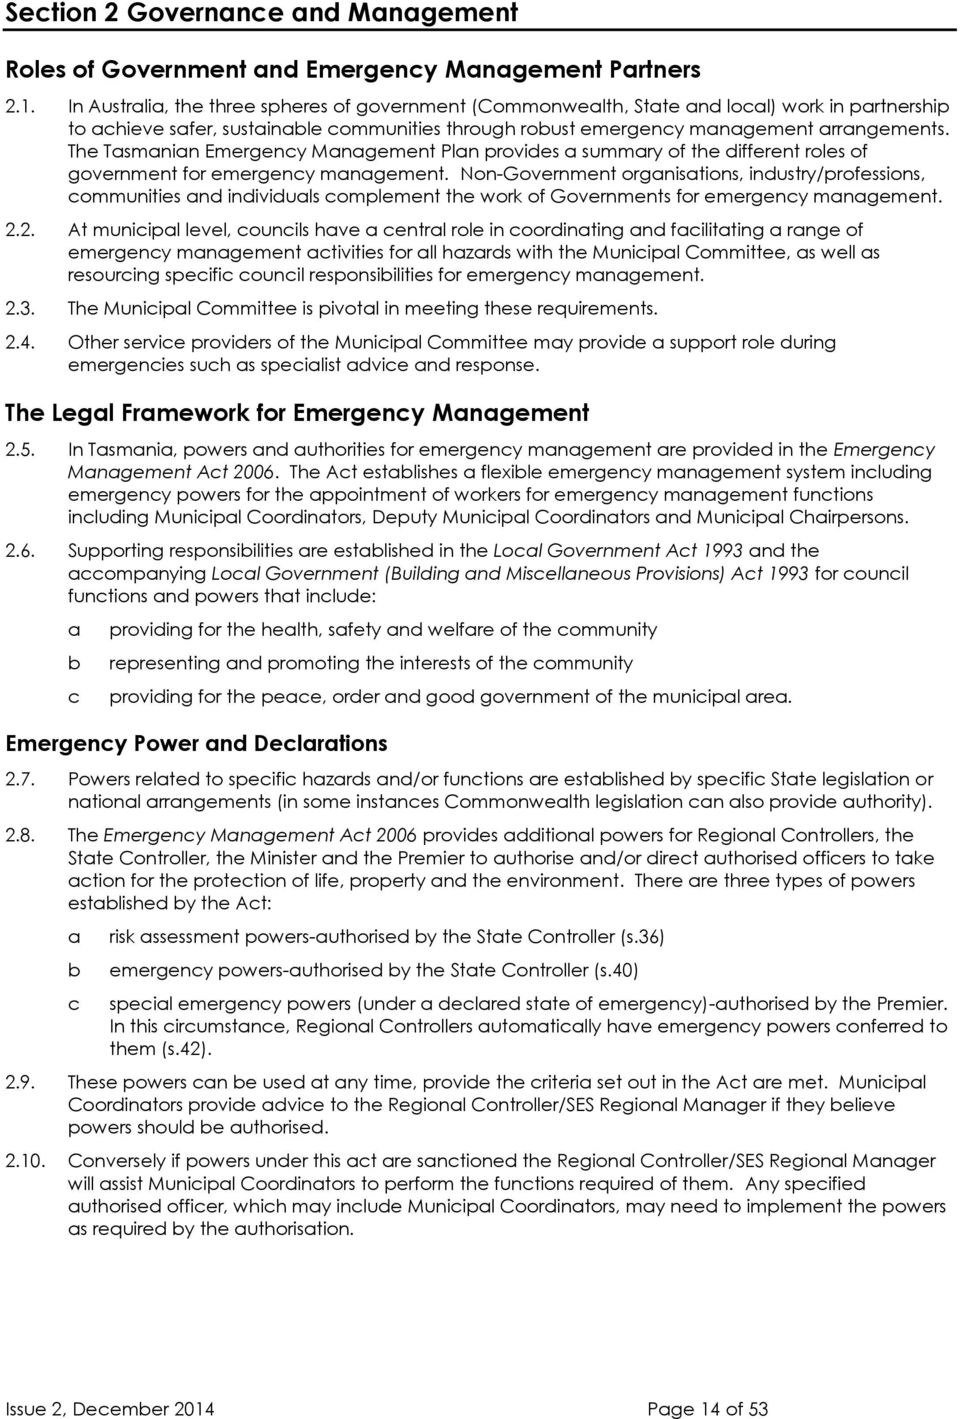 The Tsmnin Mngement Pln provides summry of the different roles of government for emergeny mngement.